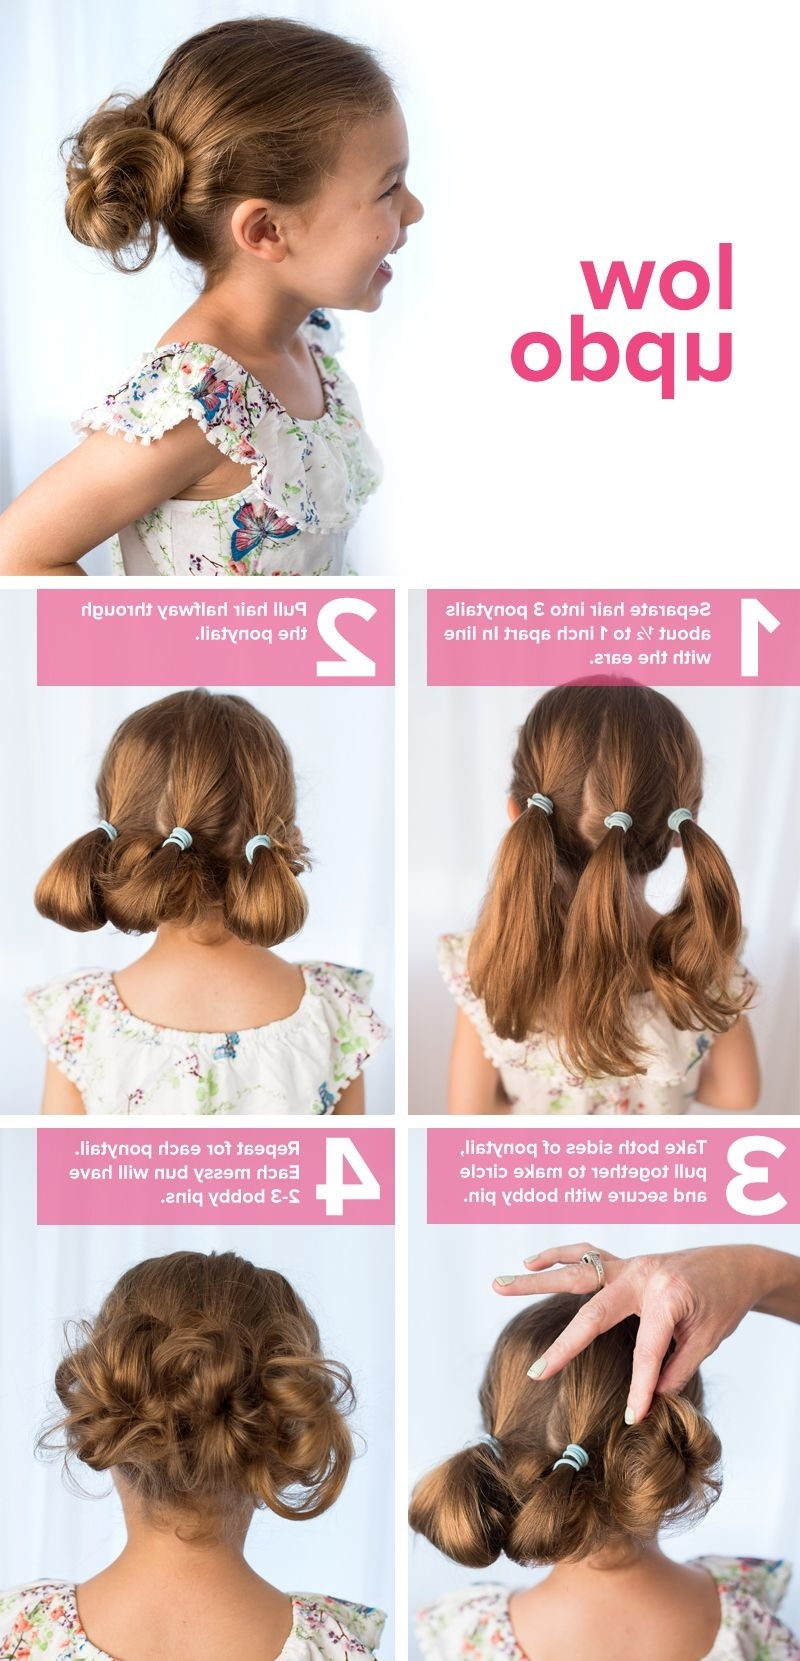 5 Fast, Easy, Cute Hairstyles For Girls | Low Updo, Updo And Kids S With Quick Hair Updo Hairstyles (View 5 of 15)